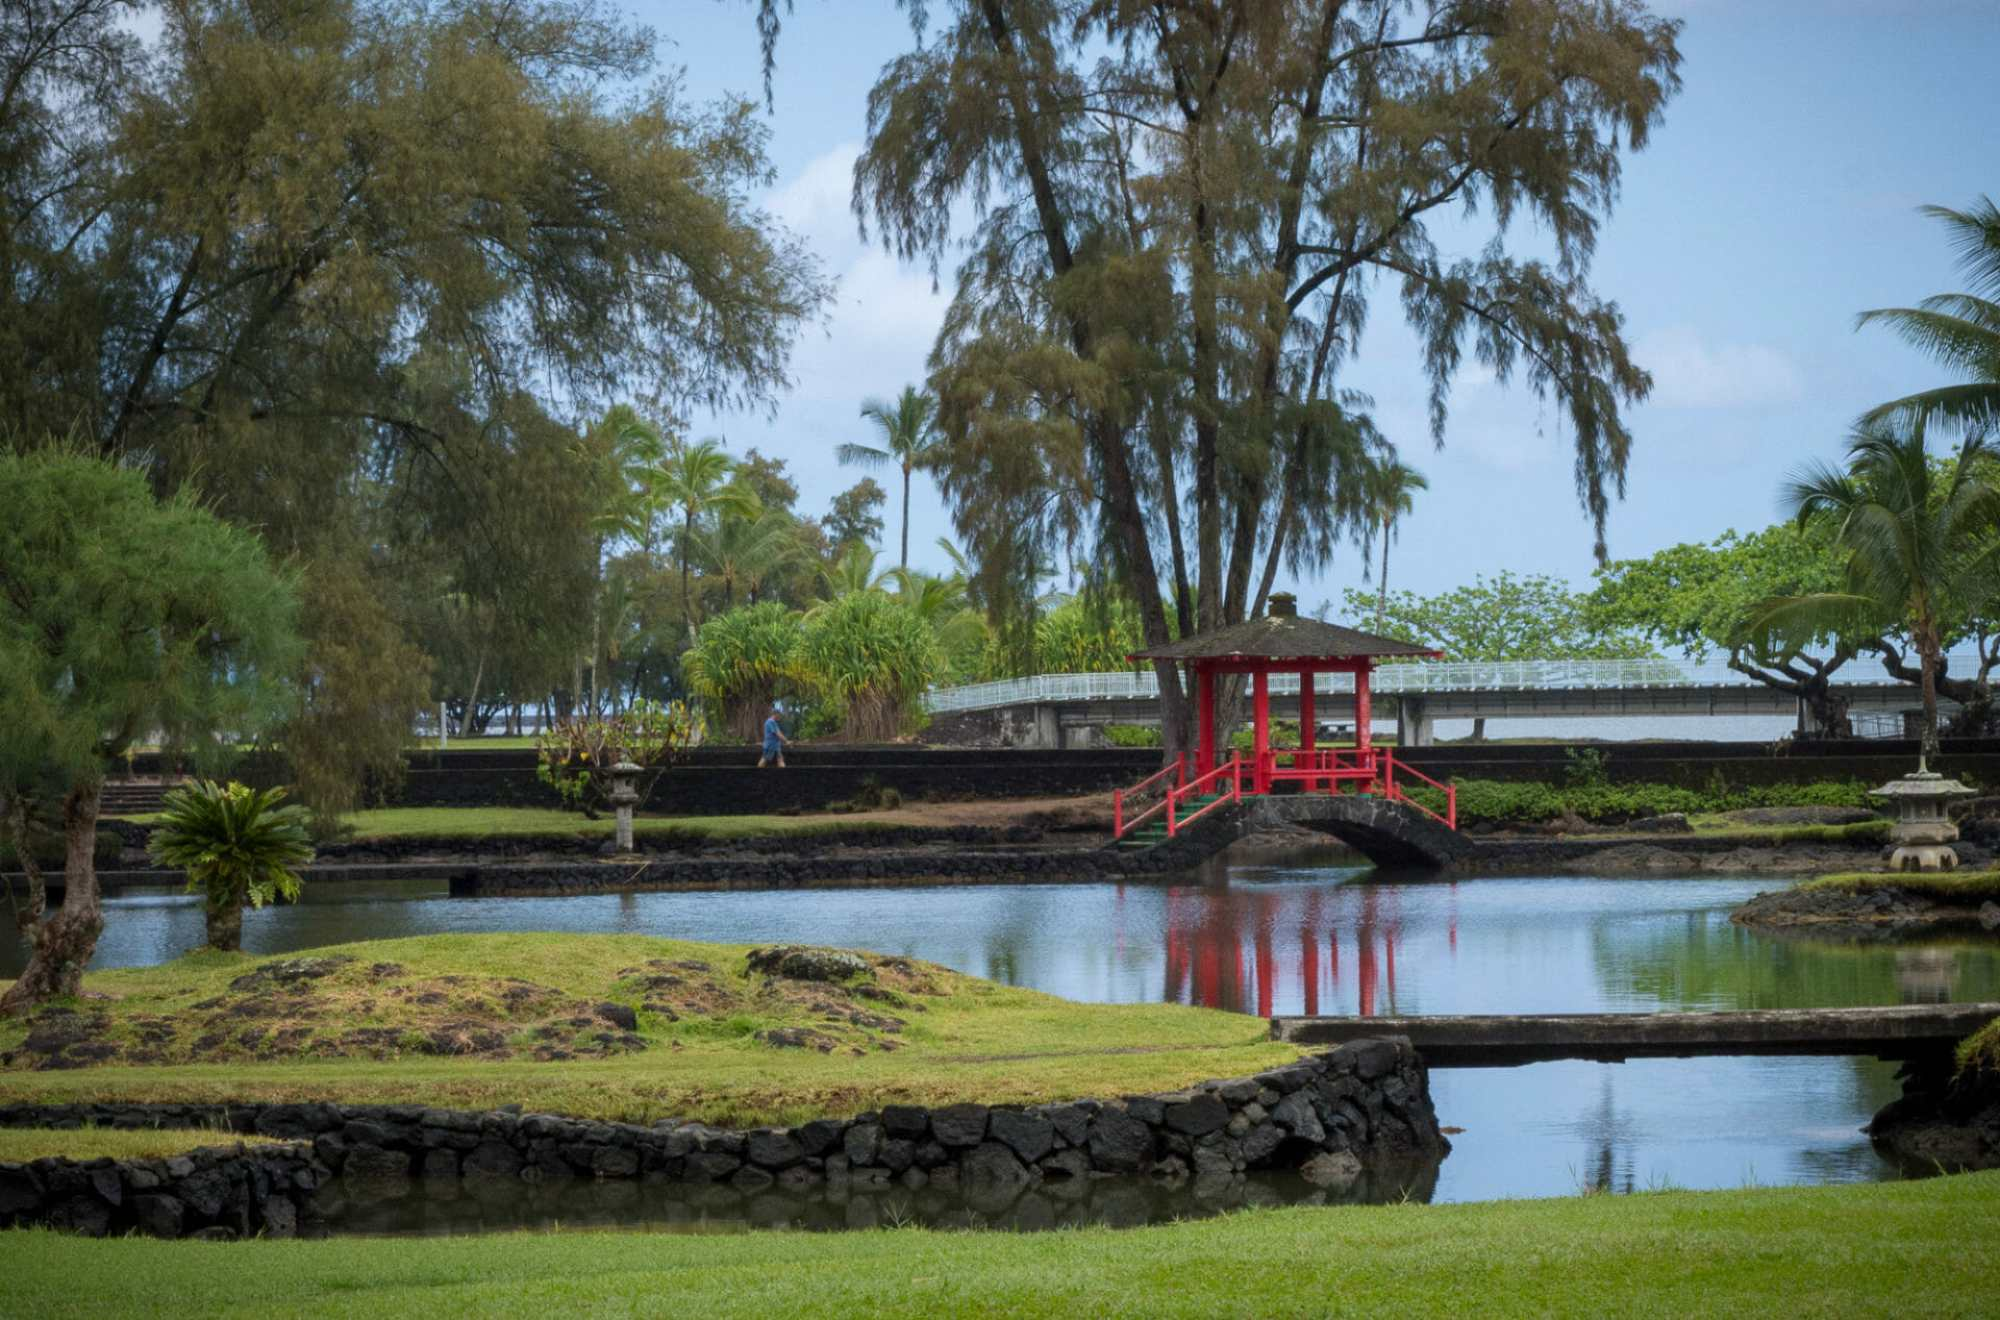 red gazebo at Liliuokalani Gardens